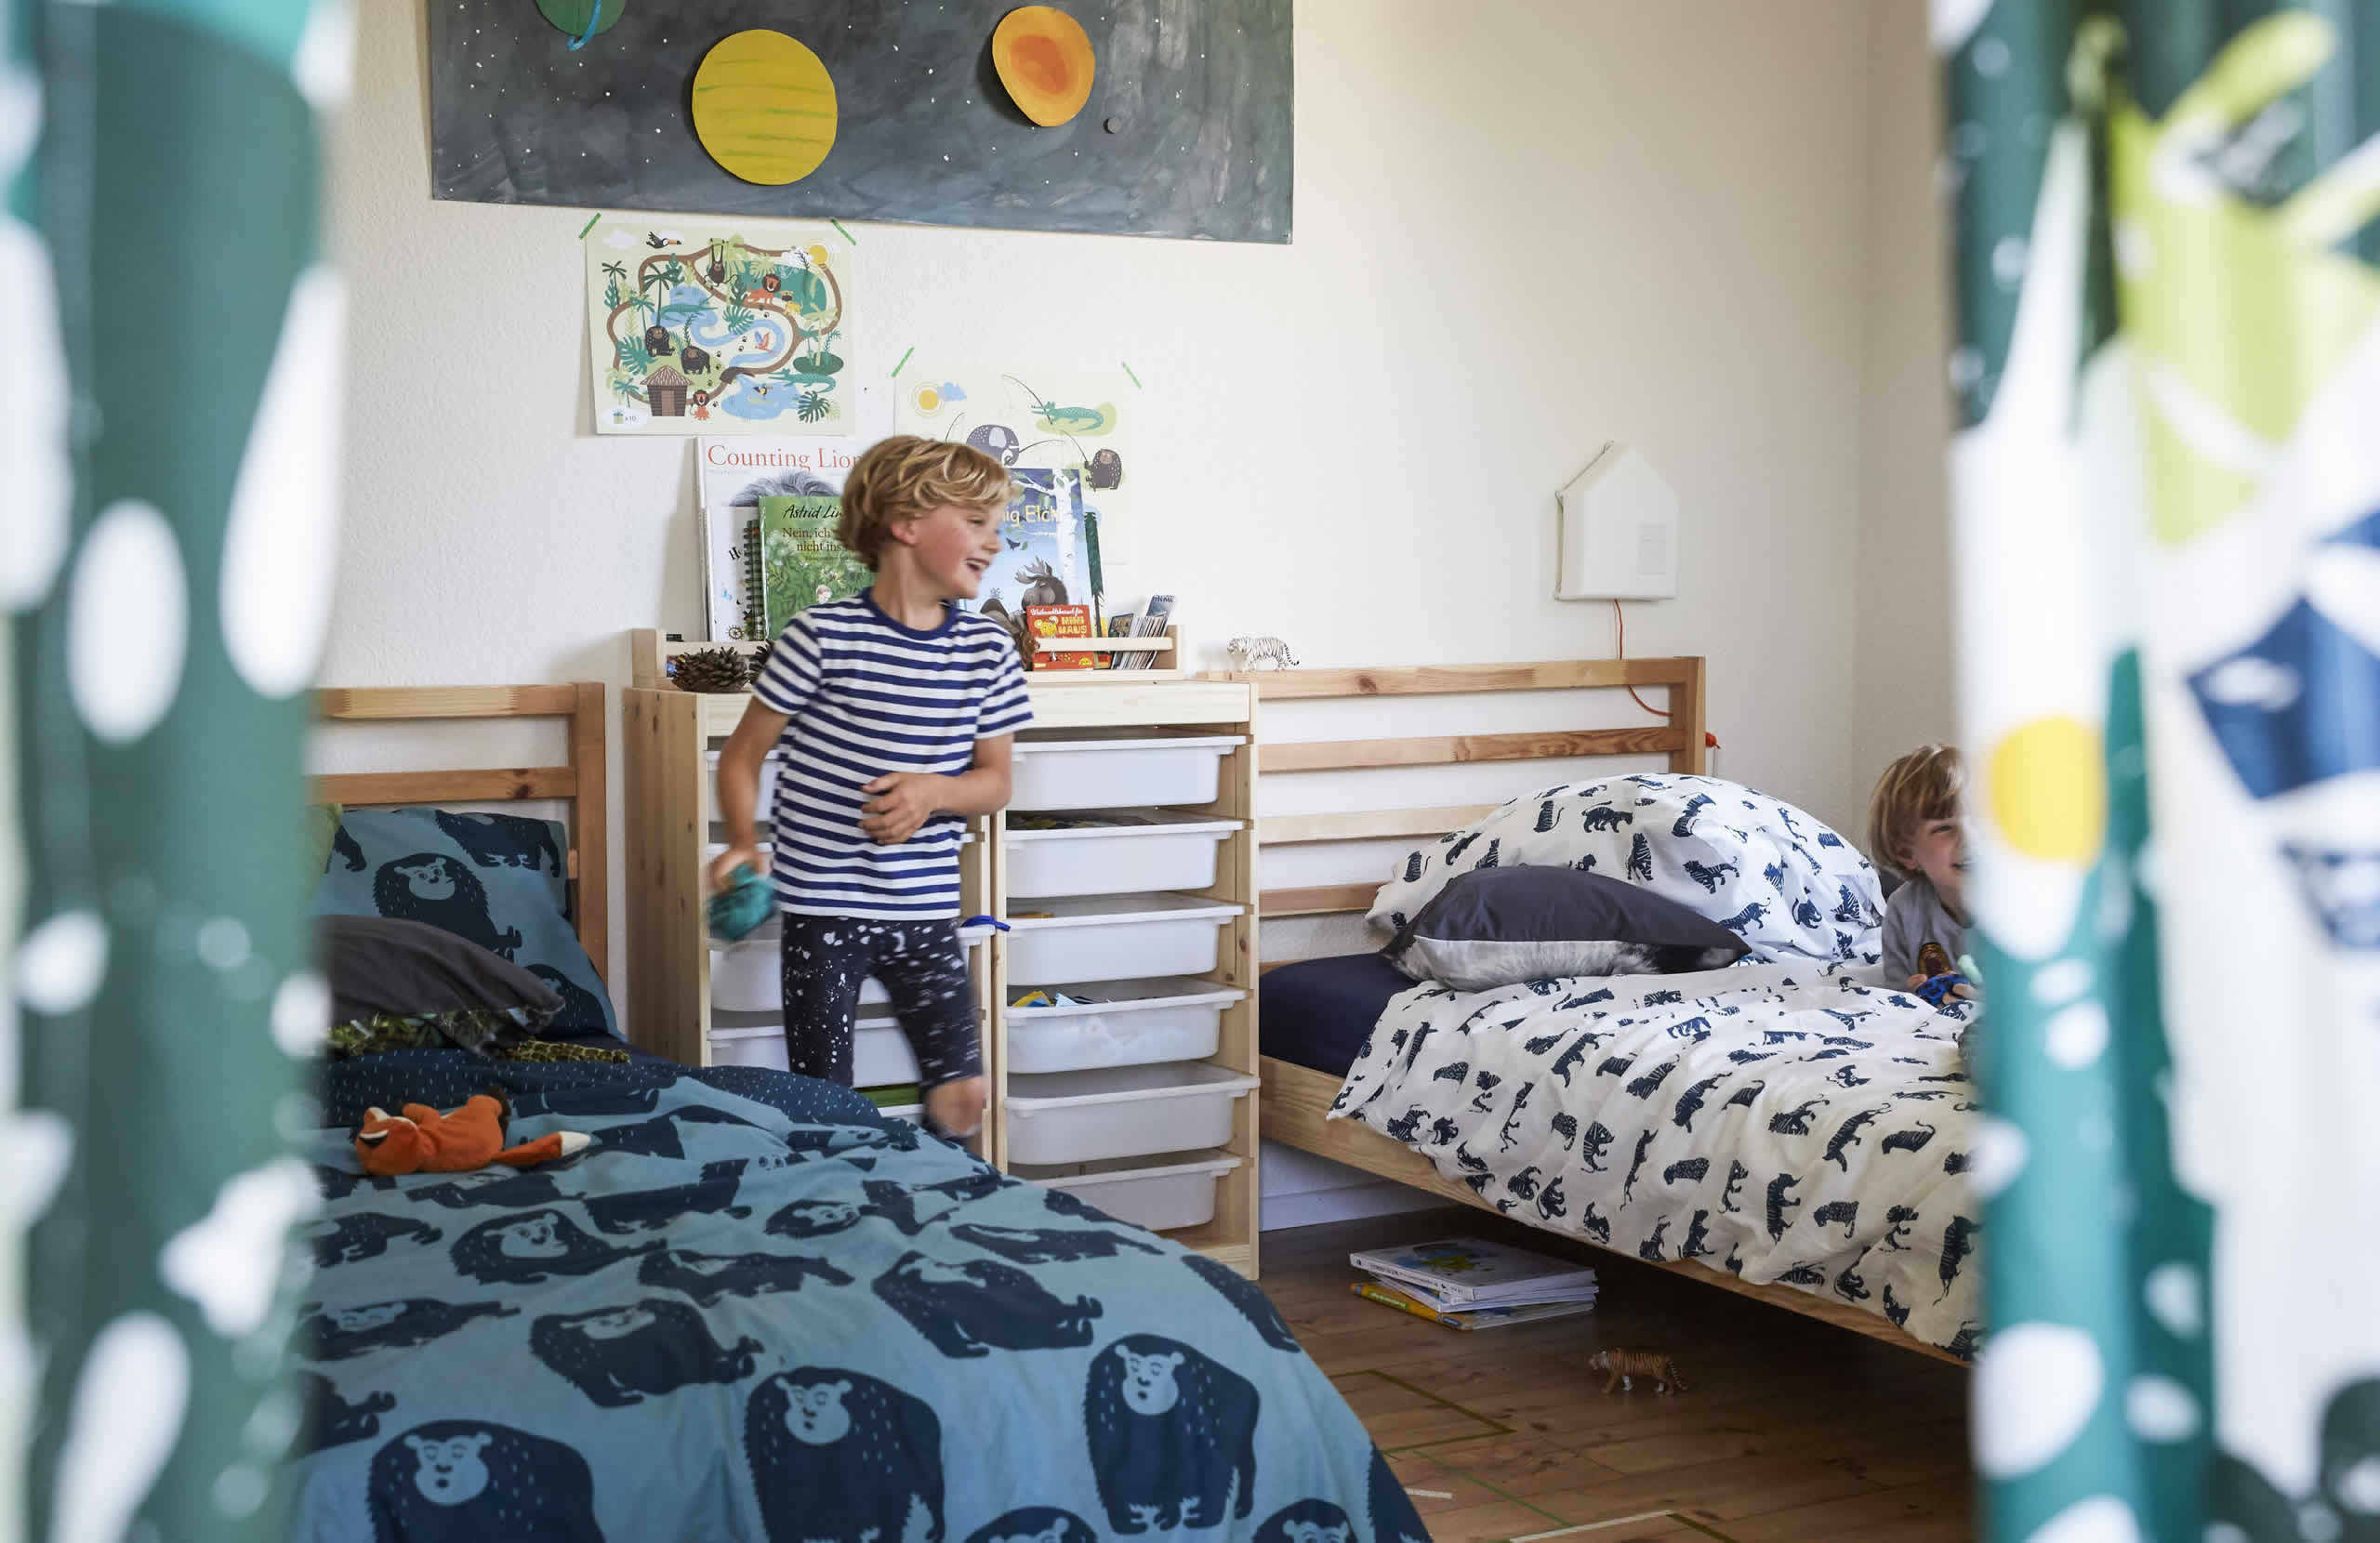 İyi Fikirler - Home visit: Tips for a playful kids' room makeover